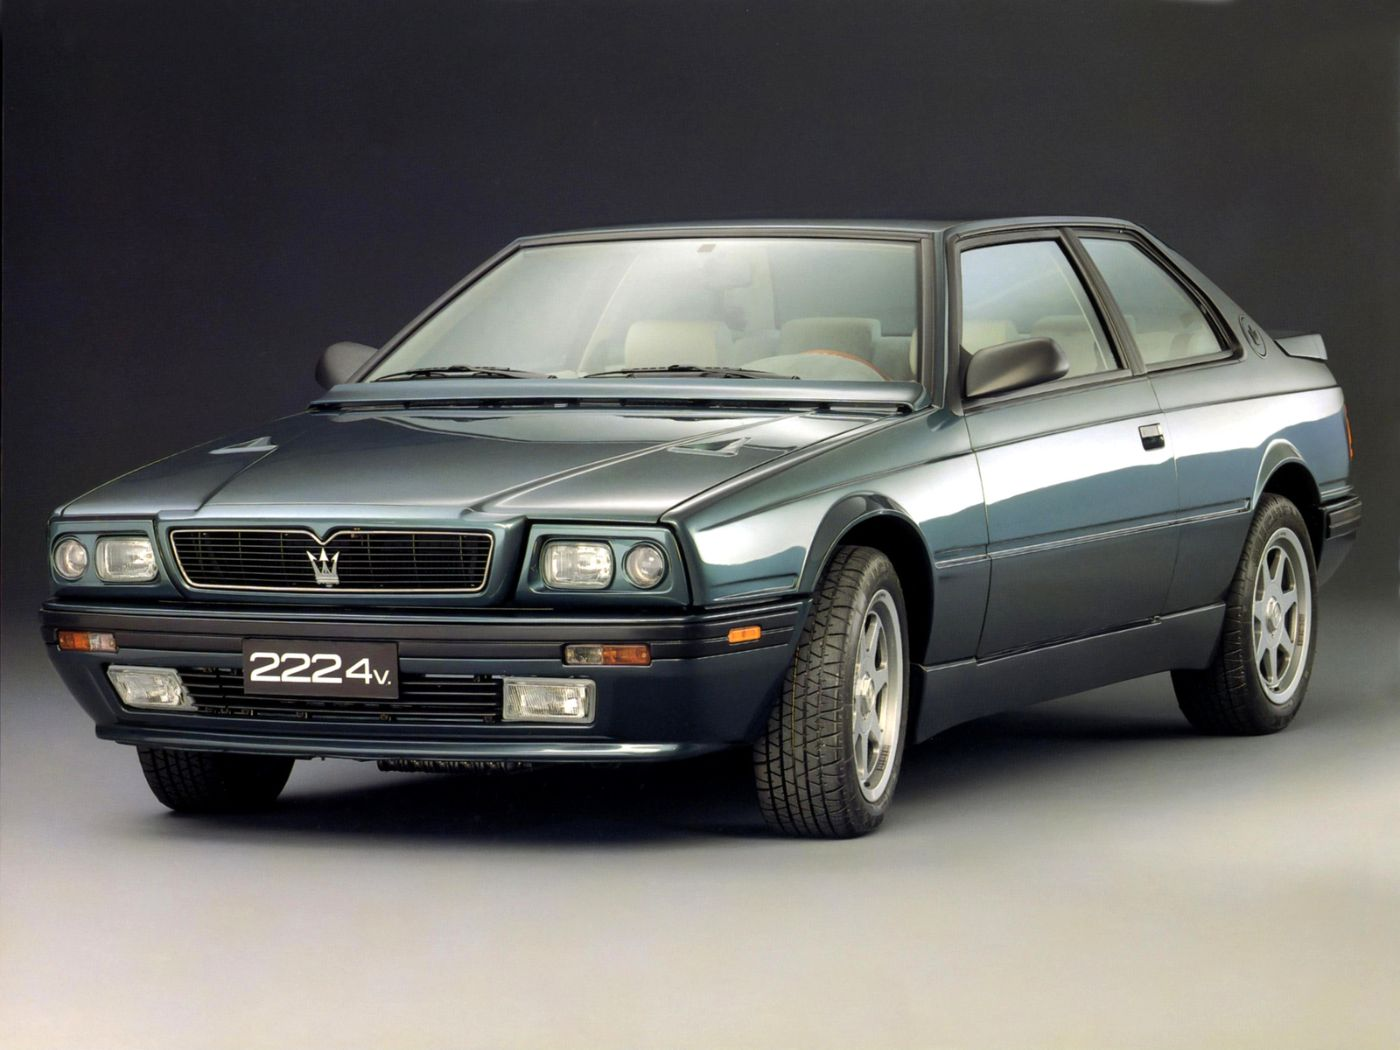 Blue Maserati Classic - Biturbo 222 - Front side view